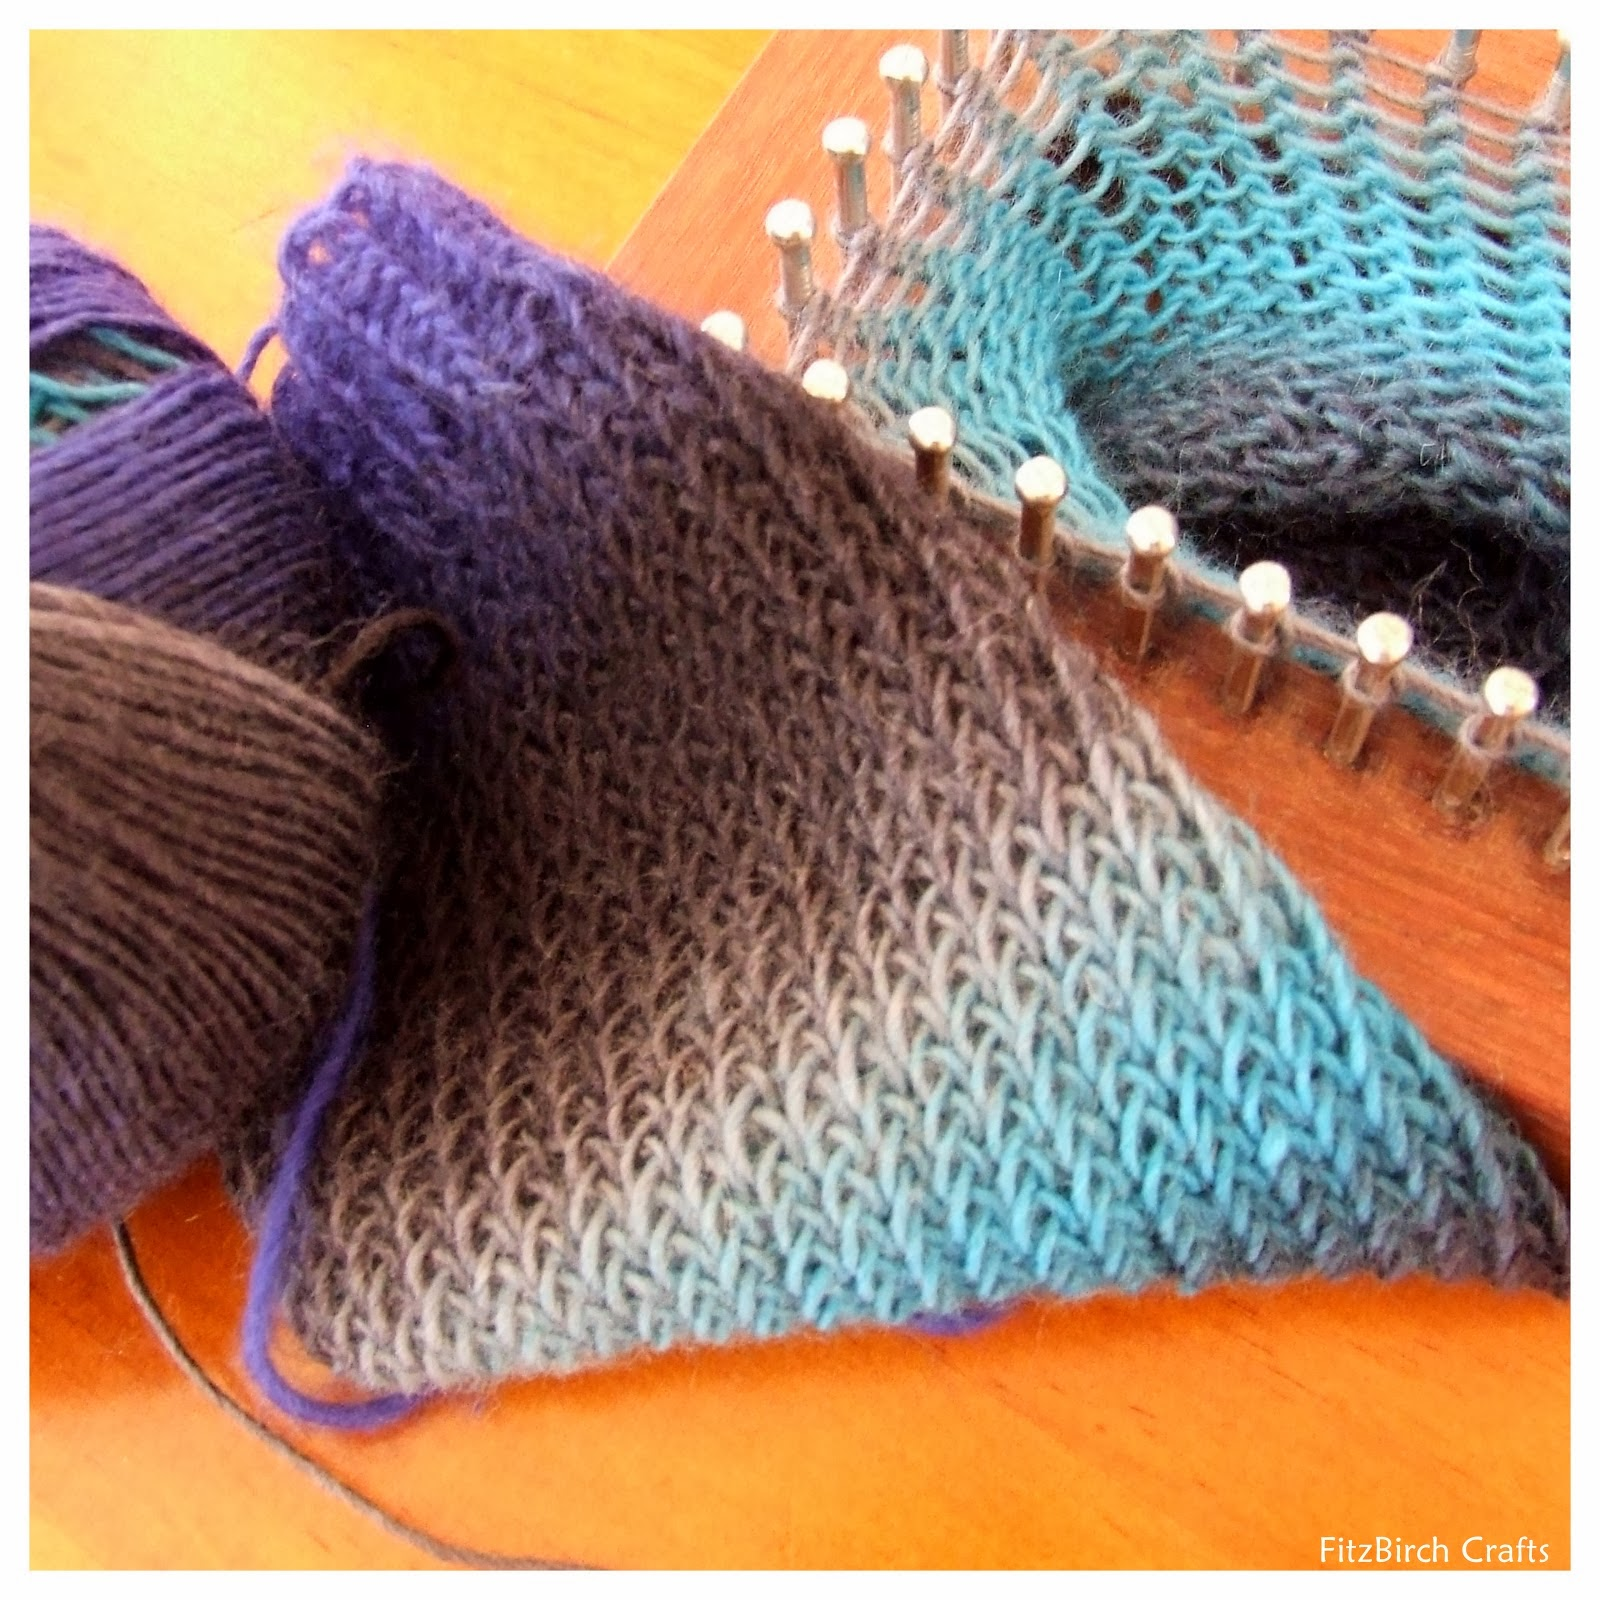 FitzBirch Crafts: All Things Socks